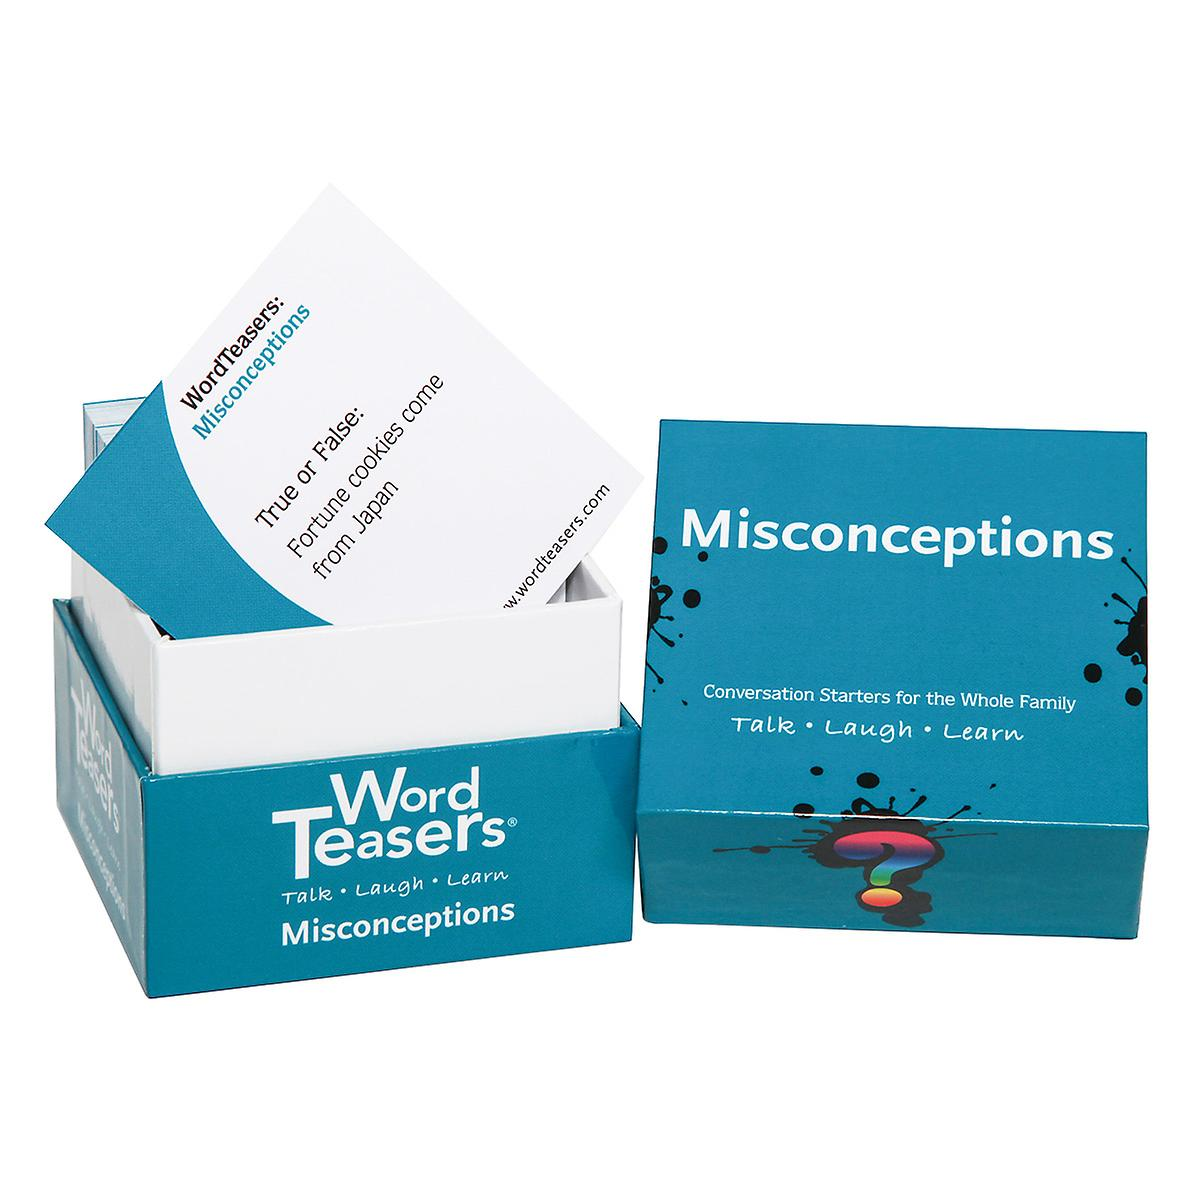 Word Teasers Misconceptions